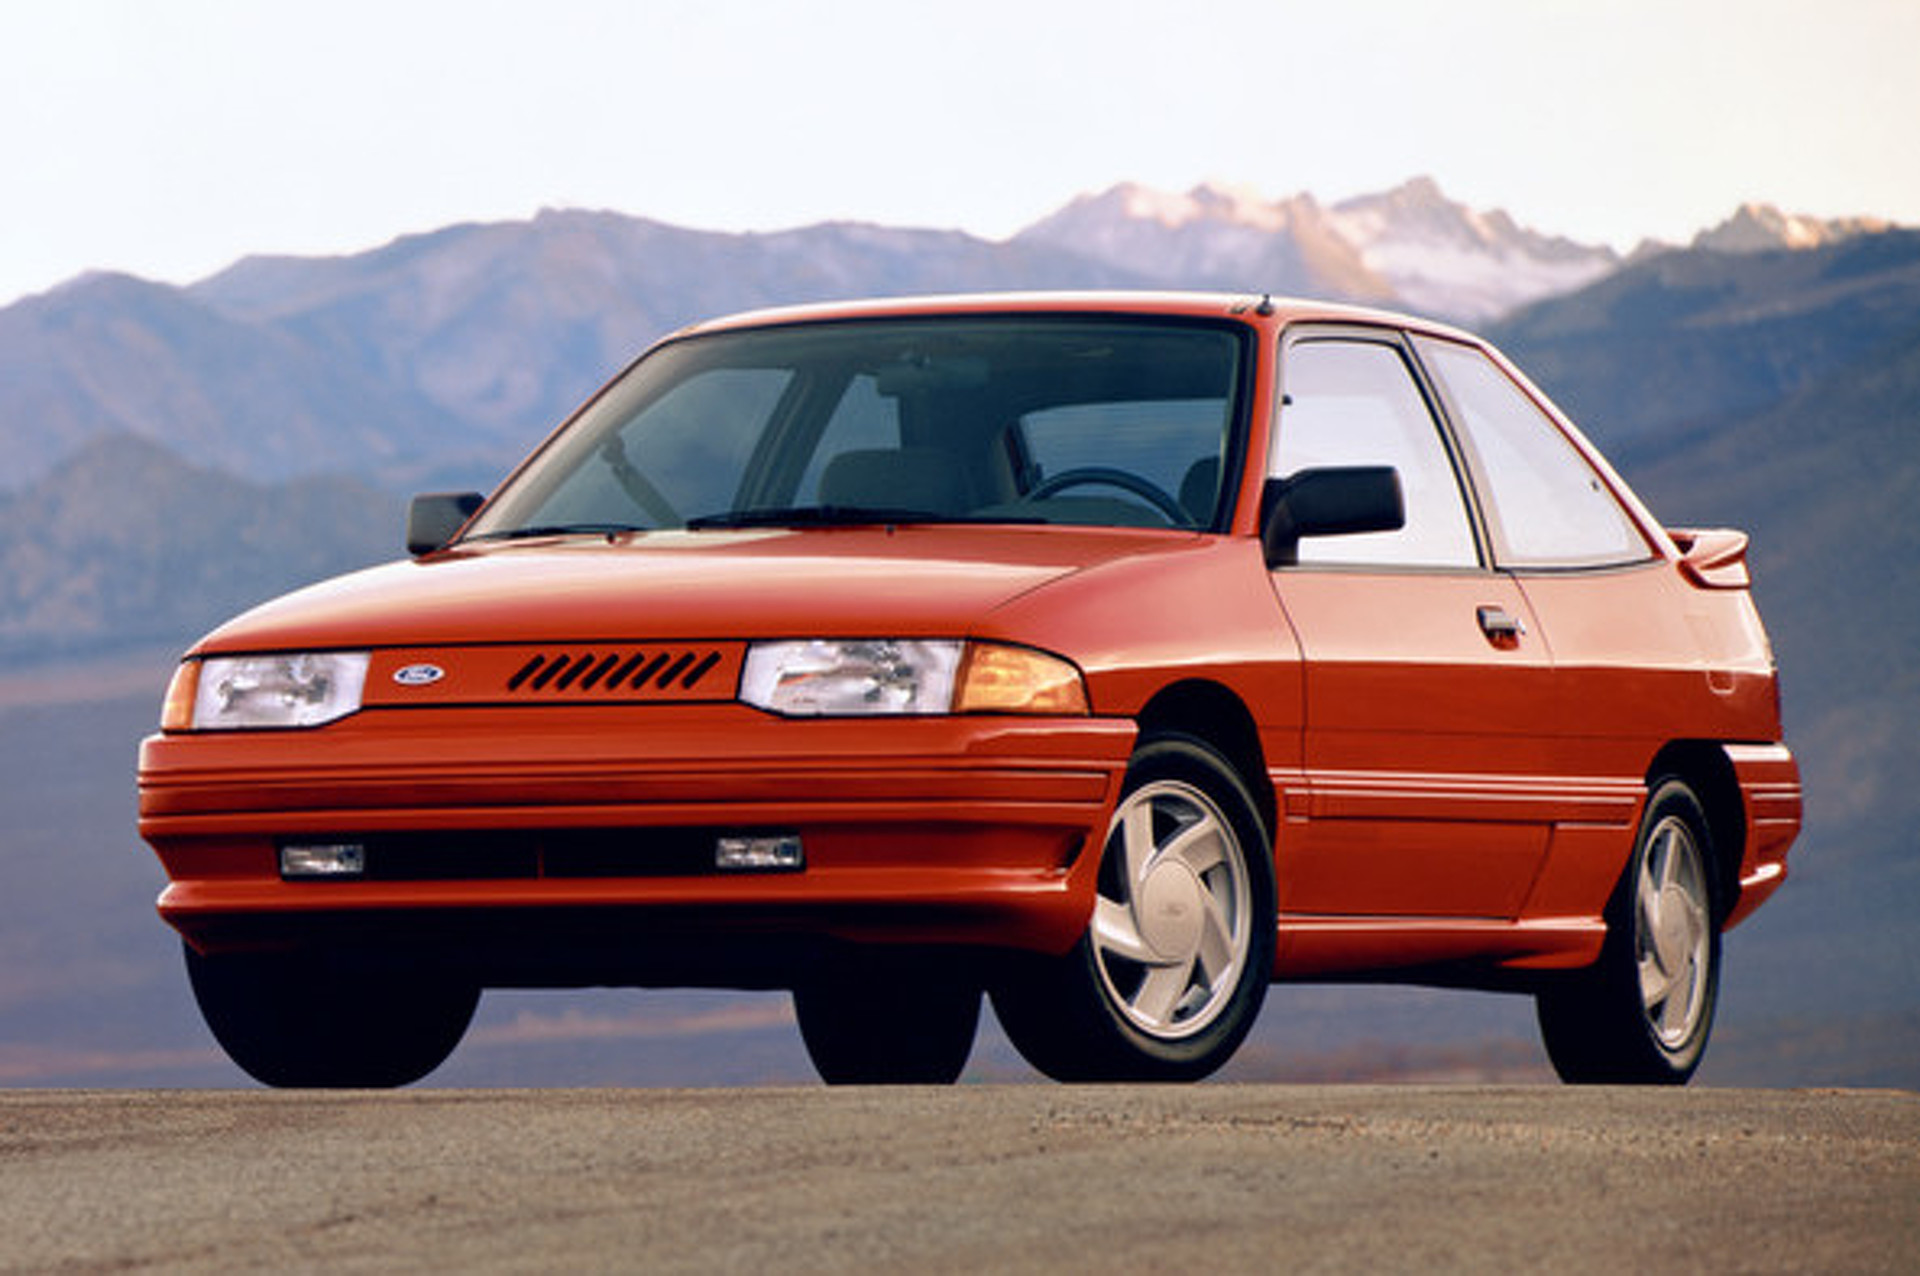 1991 Ford Escort GT May Not Have Power, But is Corny Beyond its Years [video]